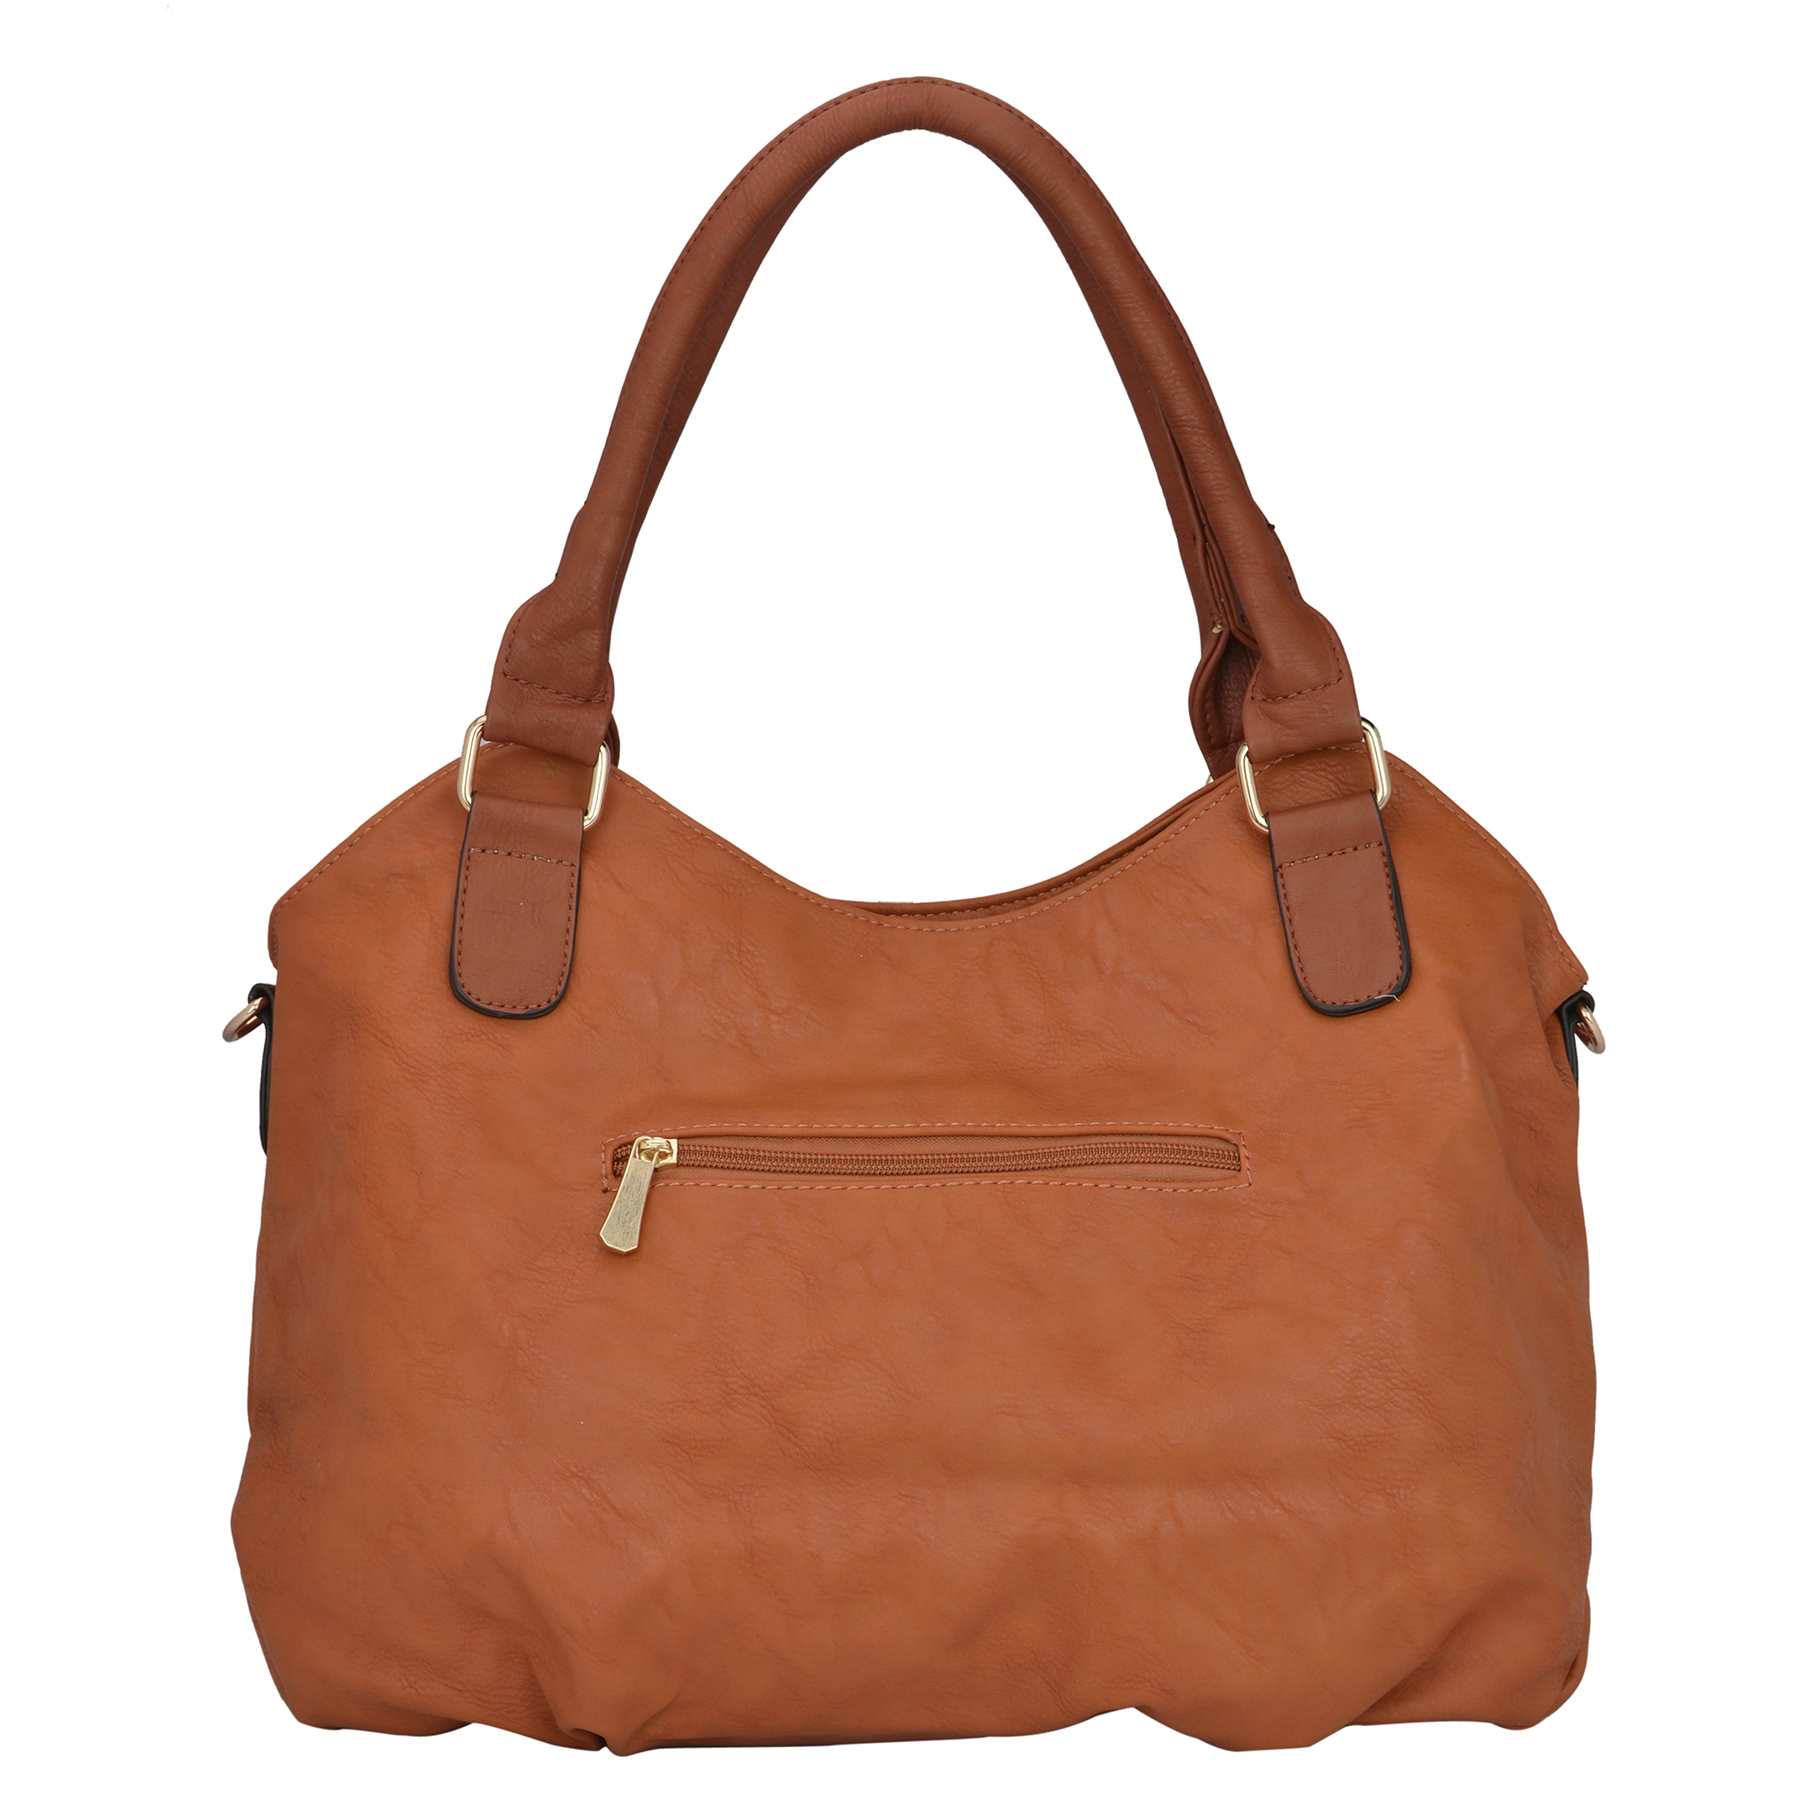 mg-collection-mimi-office-tote-style-handbag-jsh-yd-1225br-4.jpg